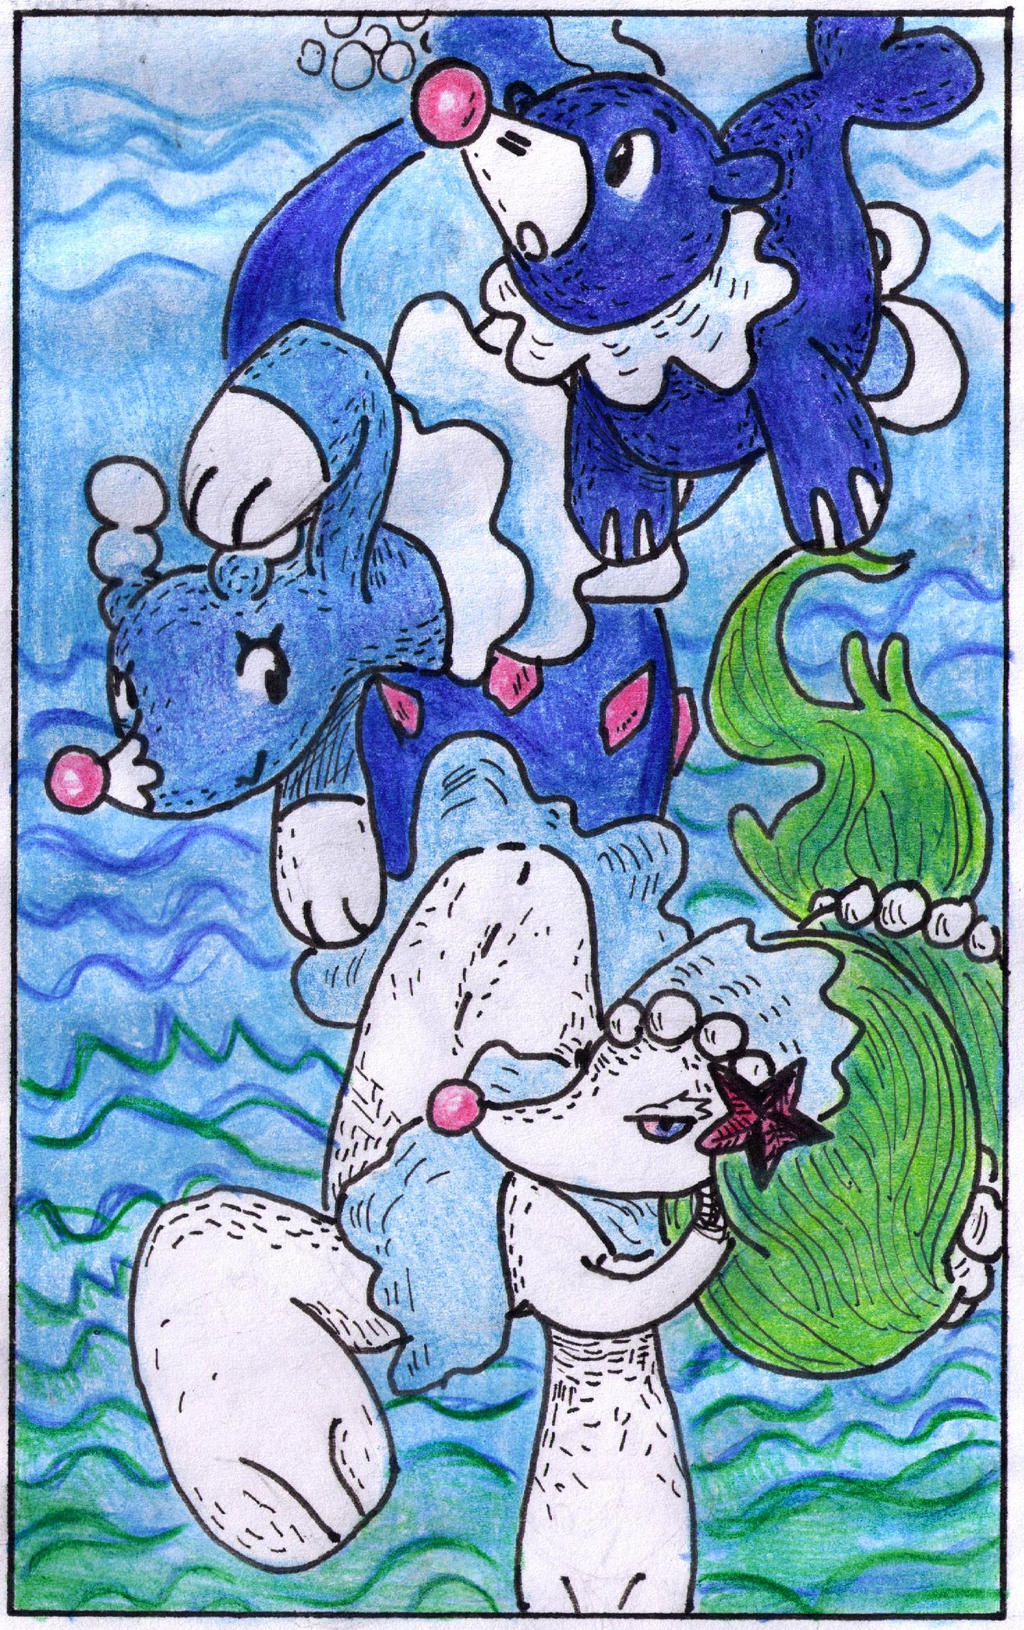 Popplio and Evolutions by Antaie